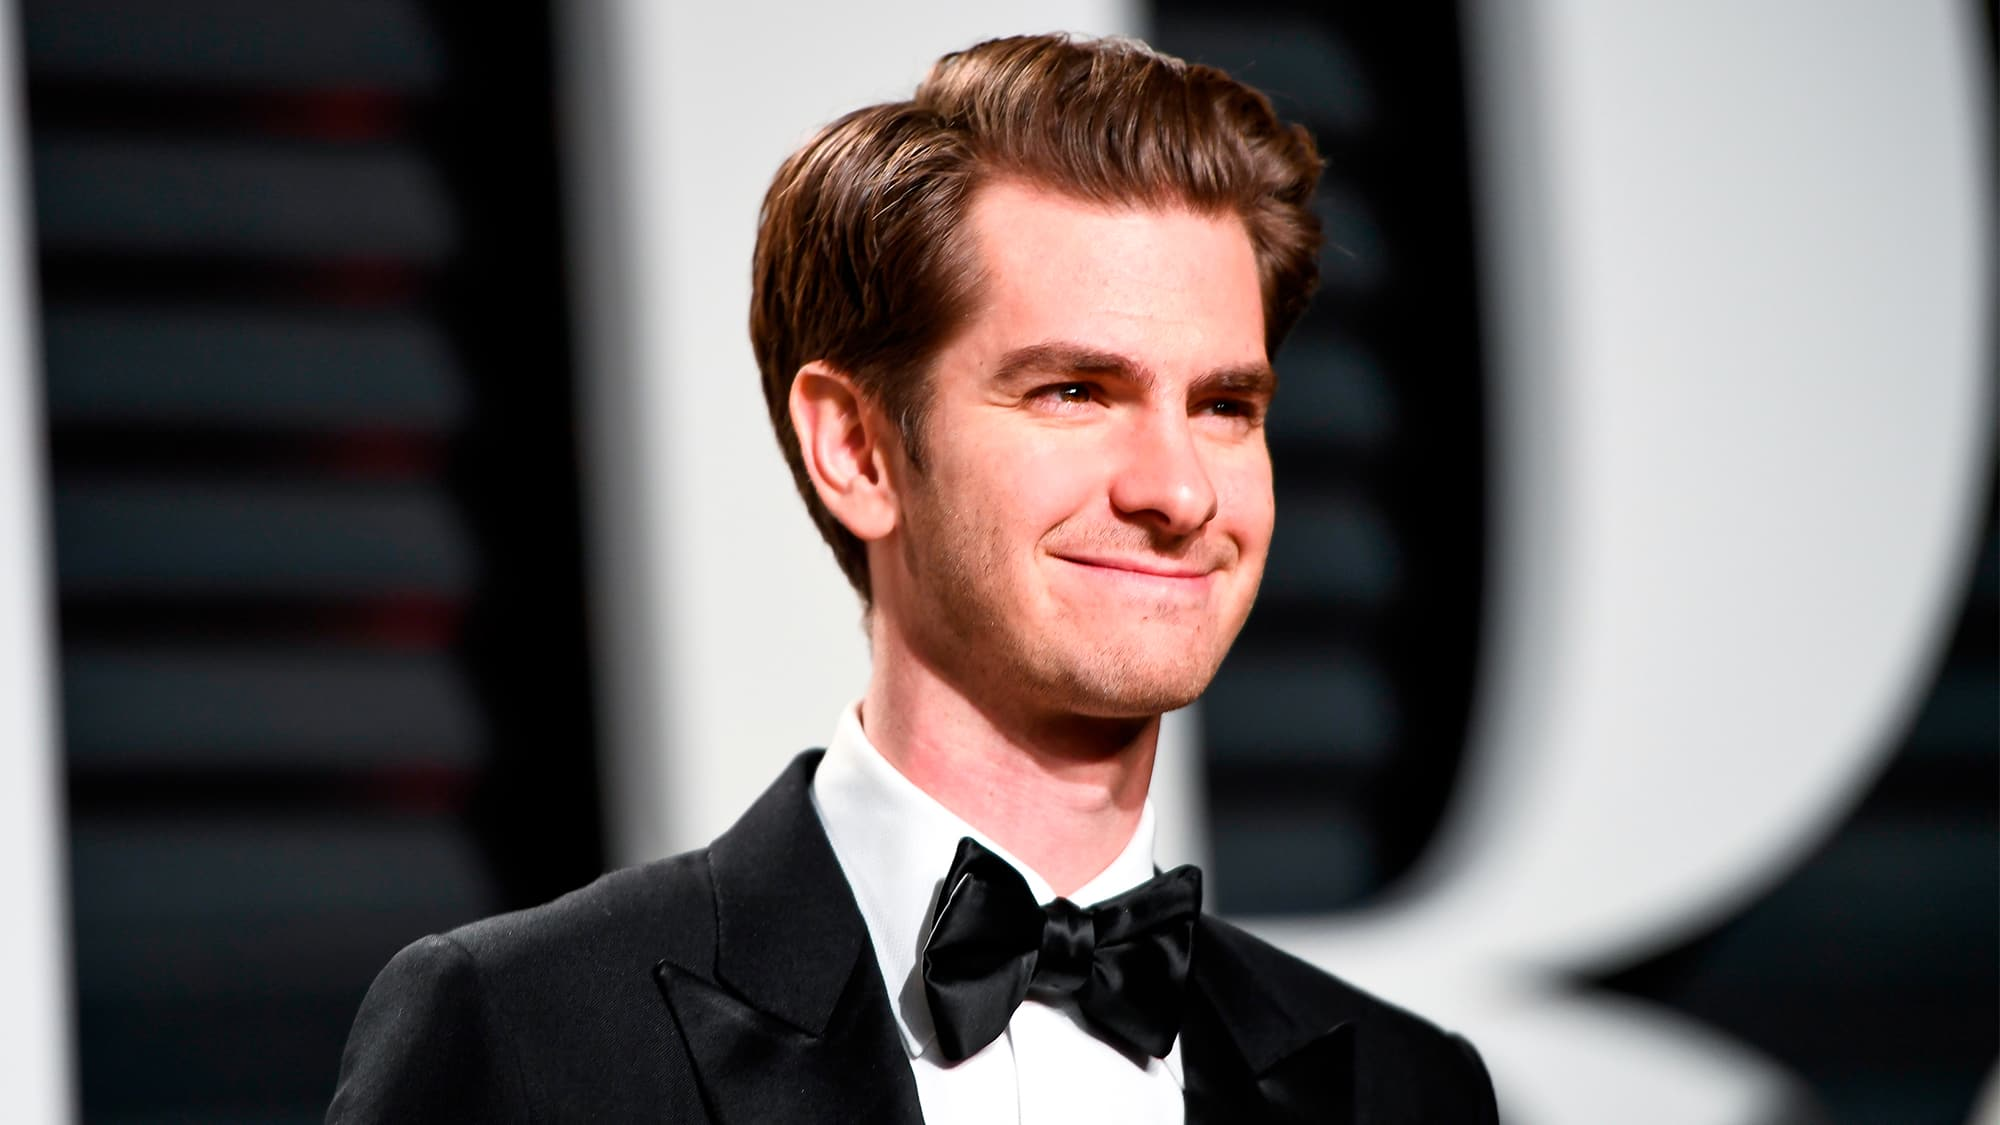 Andrew Garfield To Be Honoured With Golden Eye Award At Zurich Film Festival